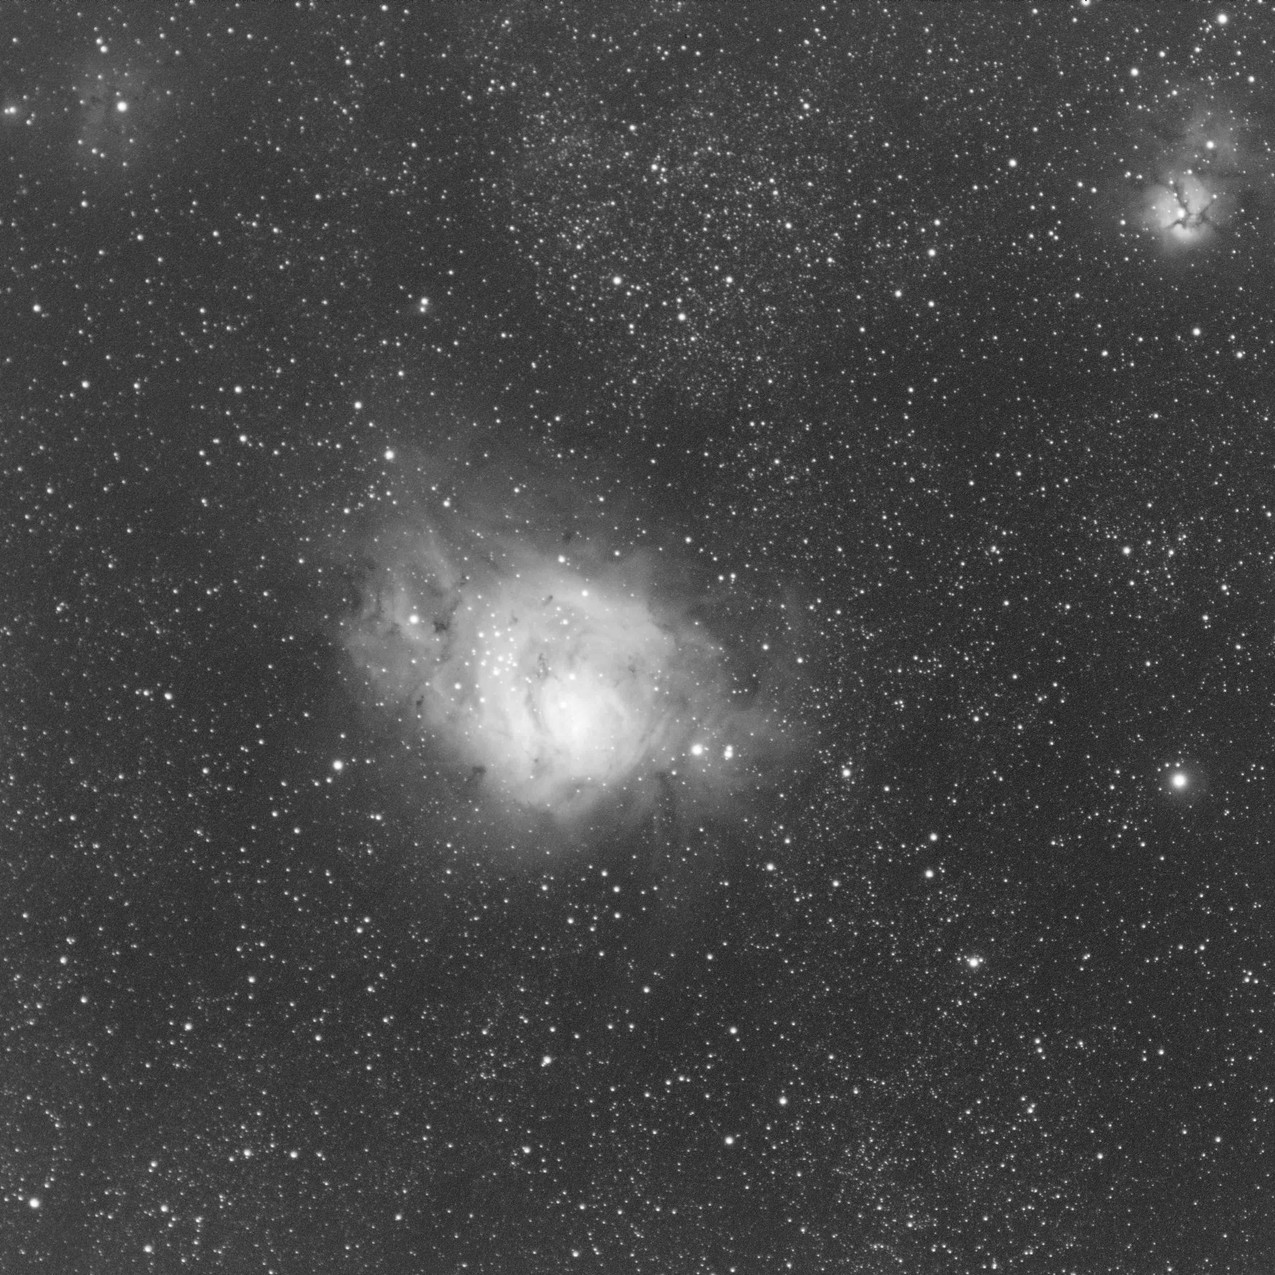 M20 the trifid nebula single shot of 3 minutes with a ZWO ASI 1600MM-pro CMOS Astrophotography camera and Meade 70mm APO Astrograph telescope - Oxygen III narrowband